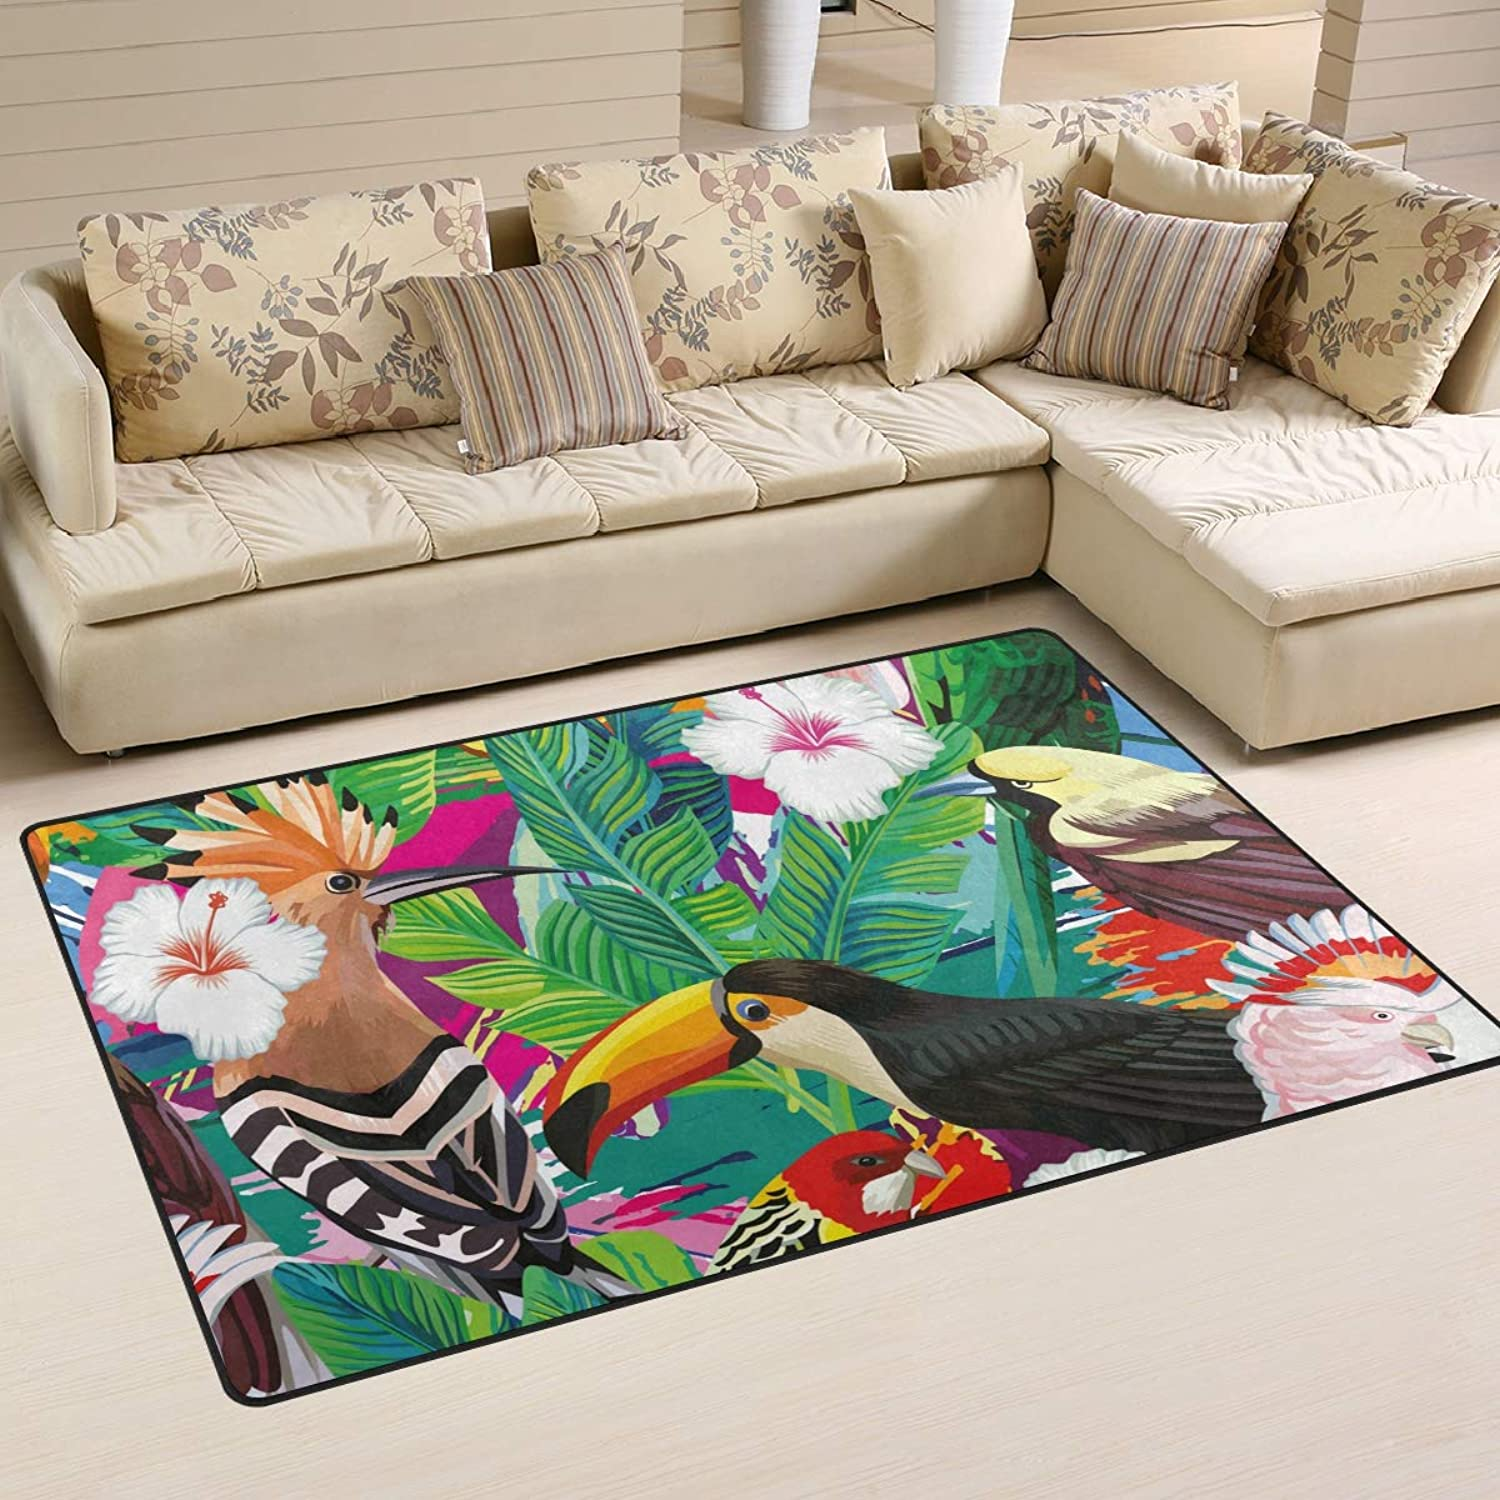 Area Rugs Doormats Tropical colorful Bird 5'x3'3 (60x39 Inches) Non-Slip Floor Mat Soft Carpet for Living Dining Bedroom Home